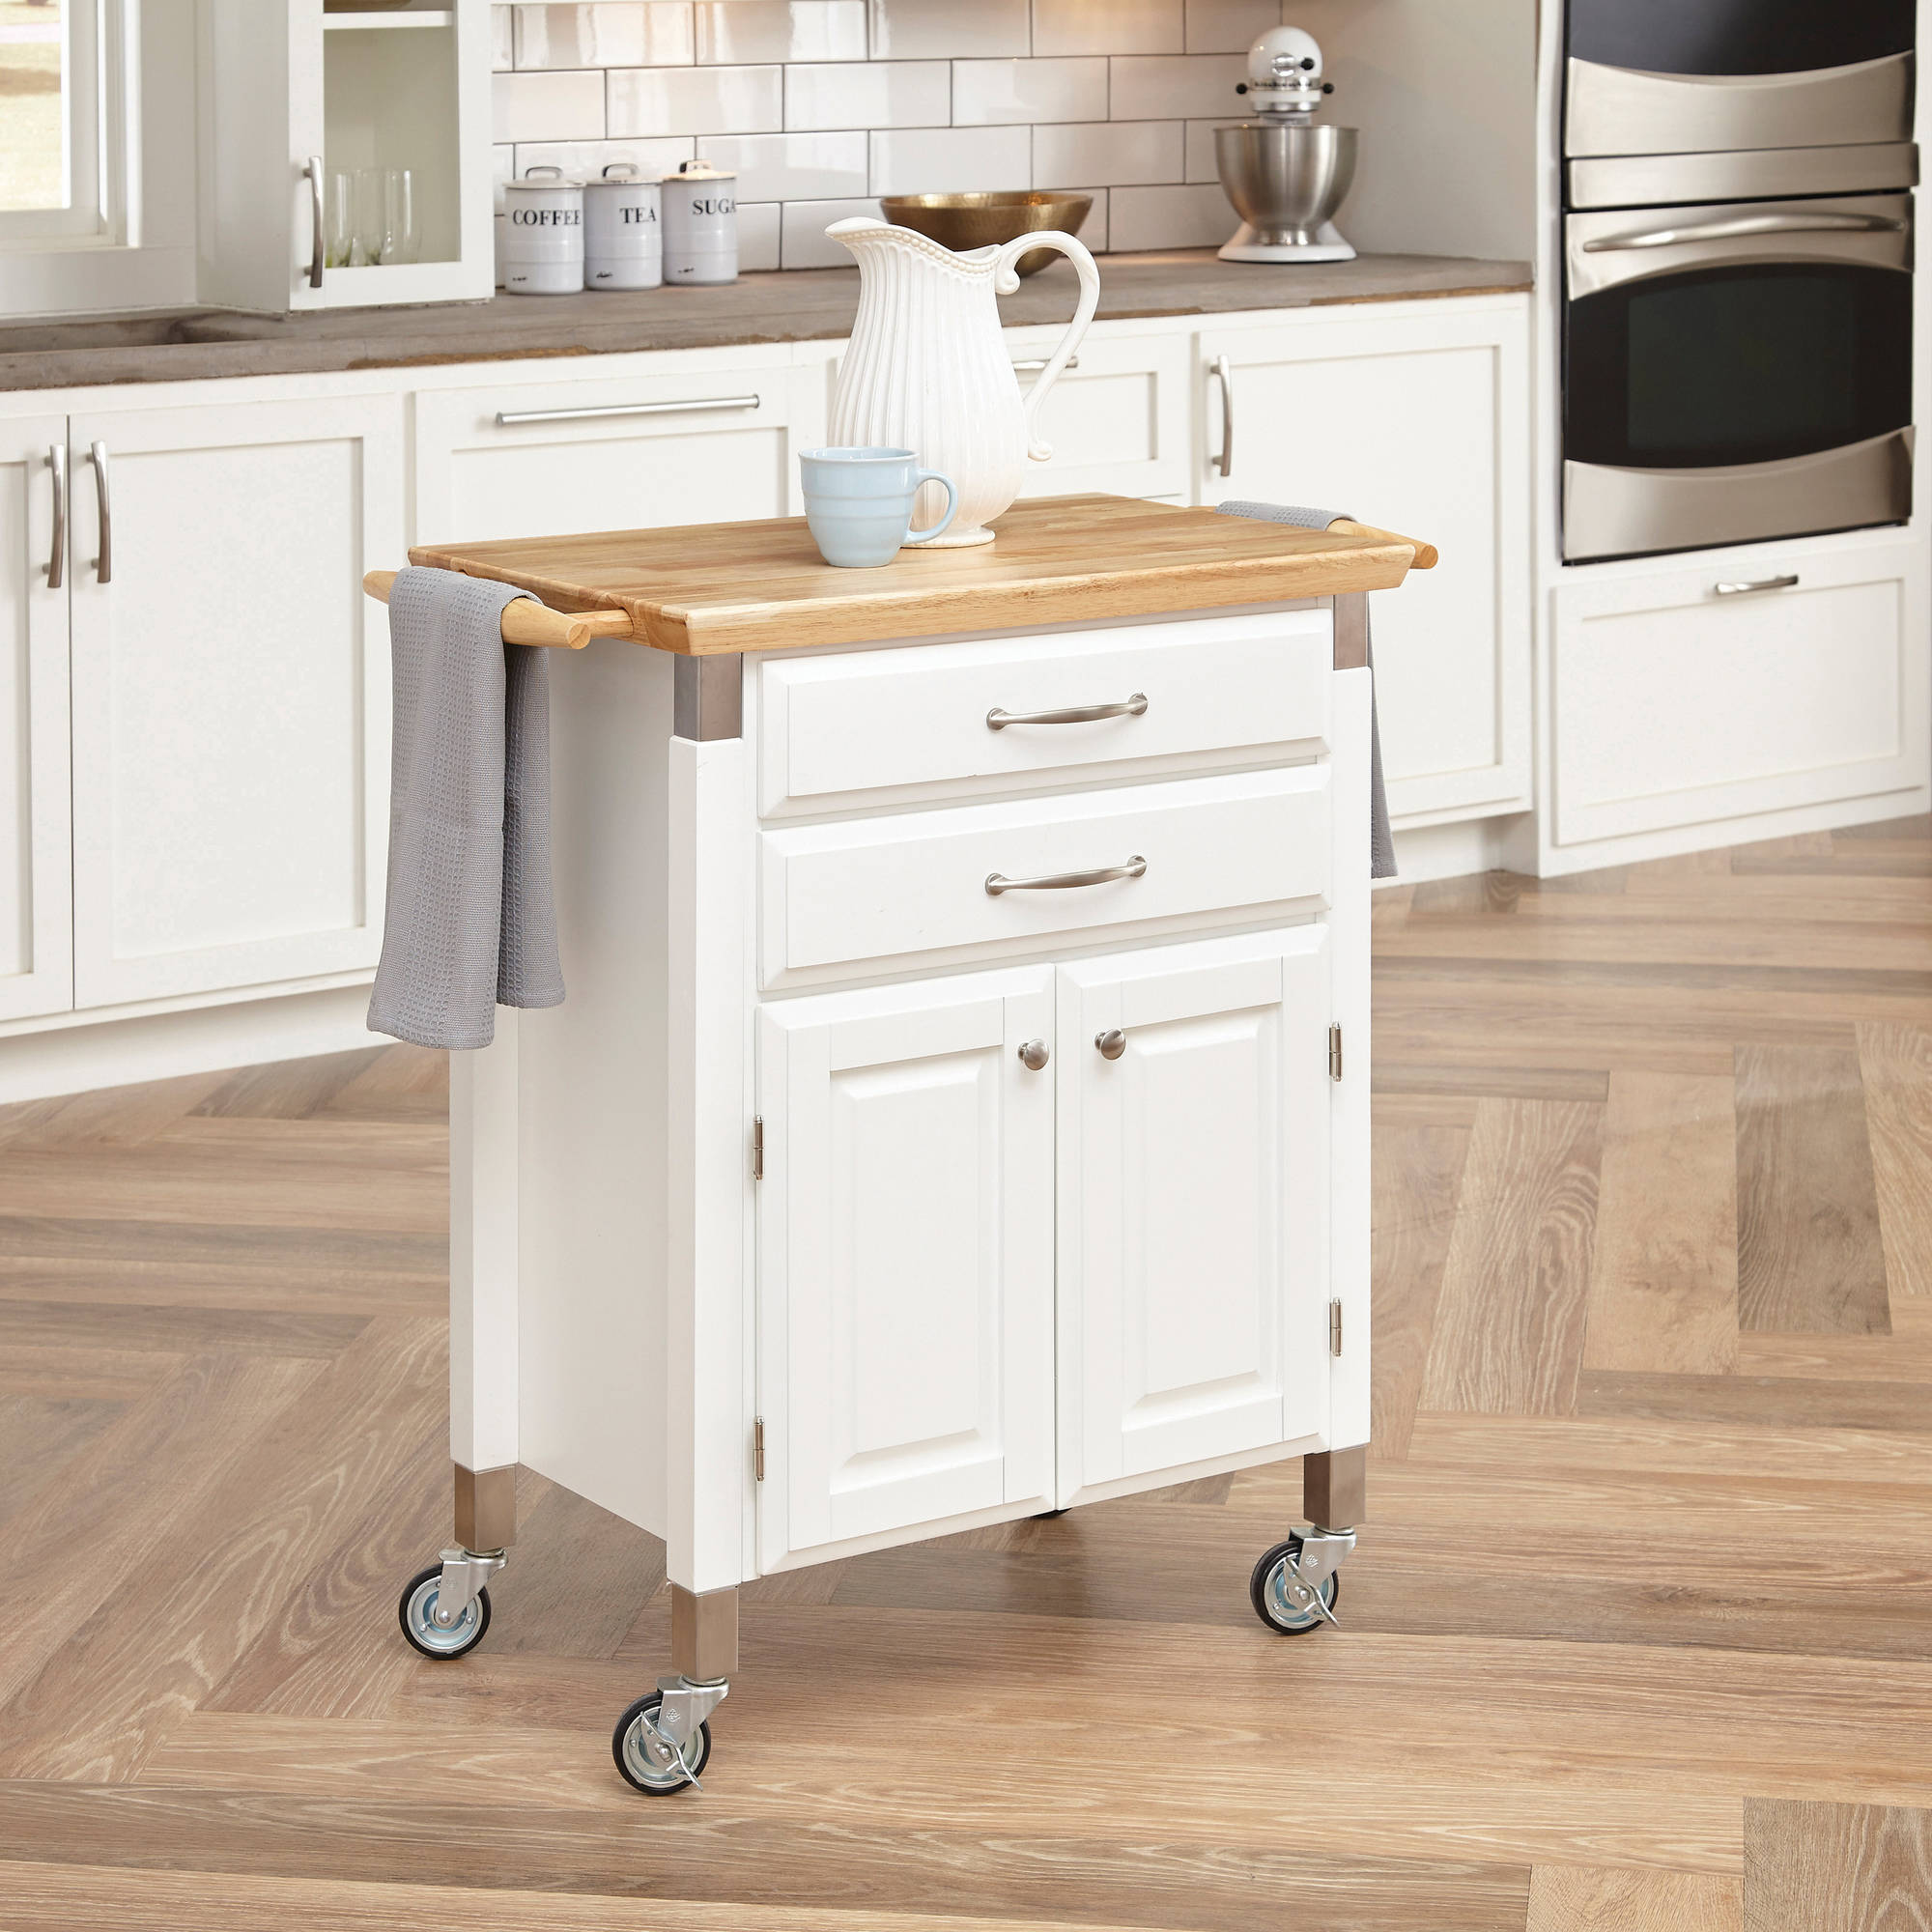 Home Styles Dolly Madison Prep and Serve Kitchen Cart, White by Home Styles